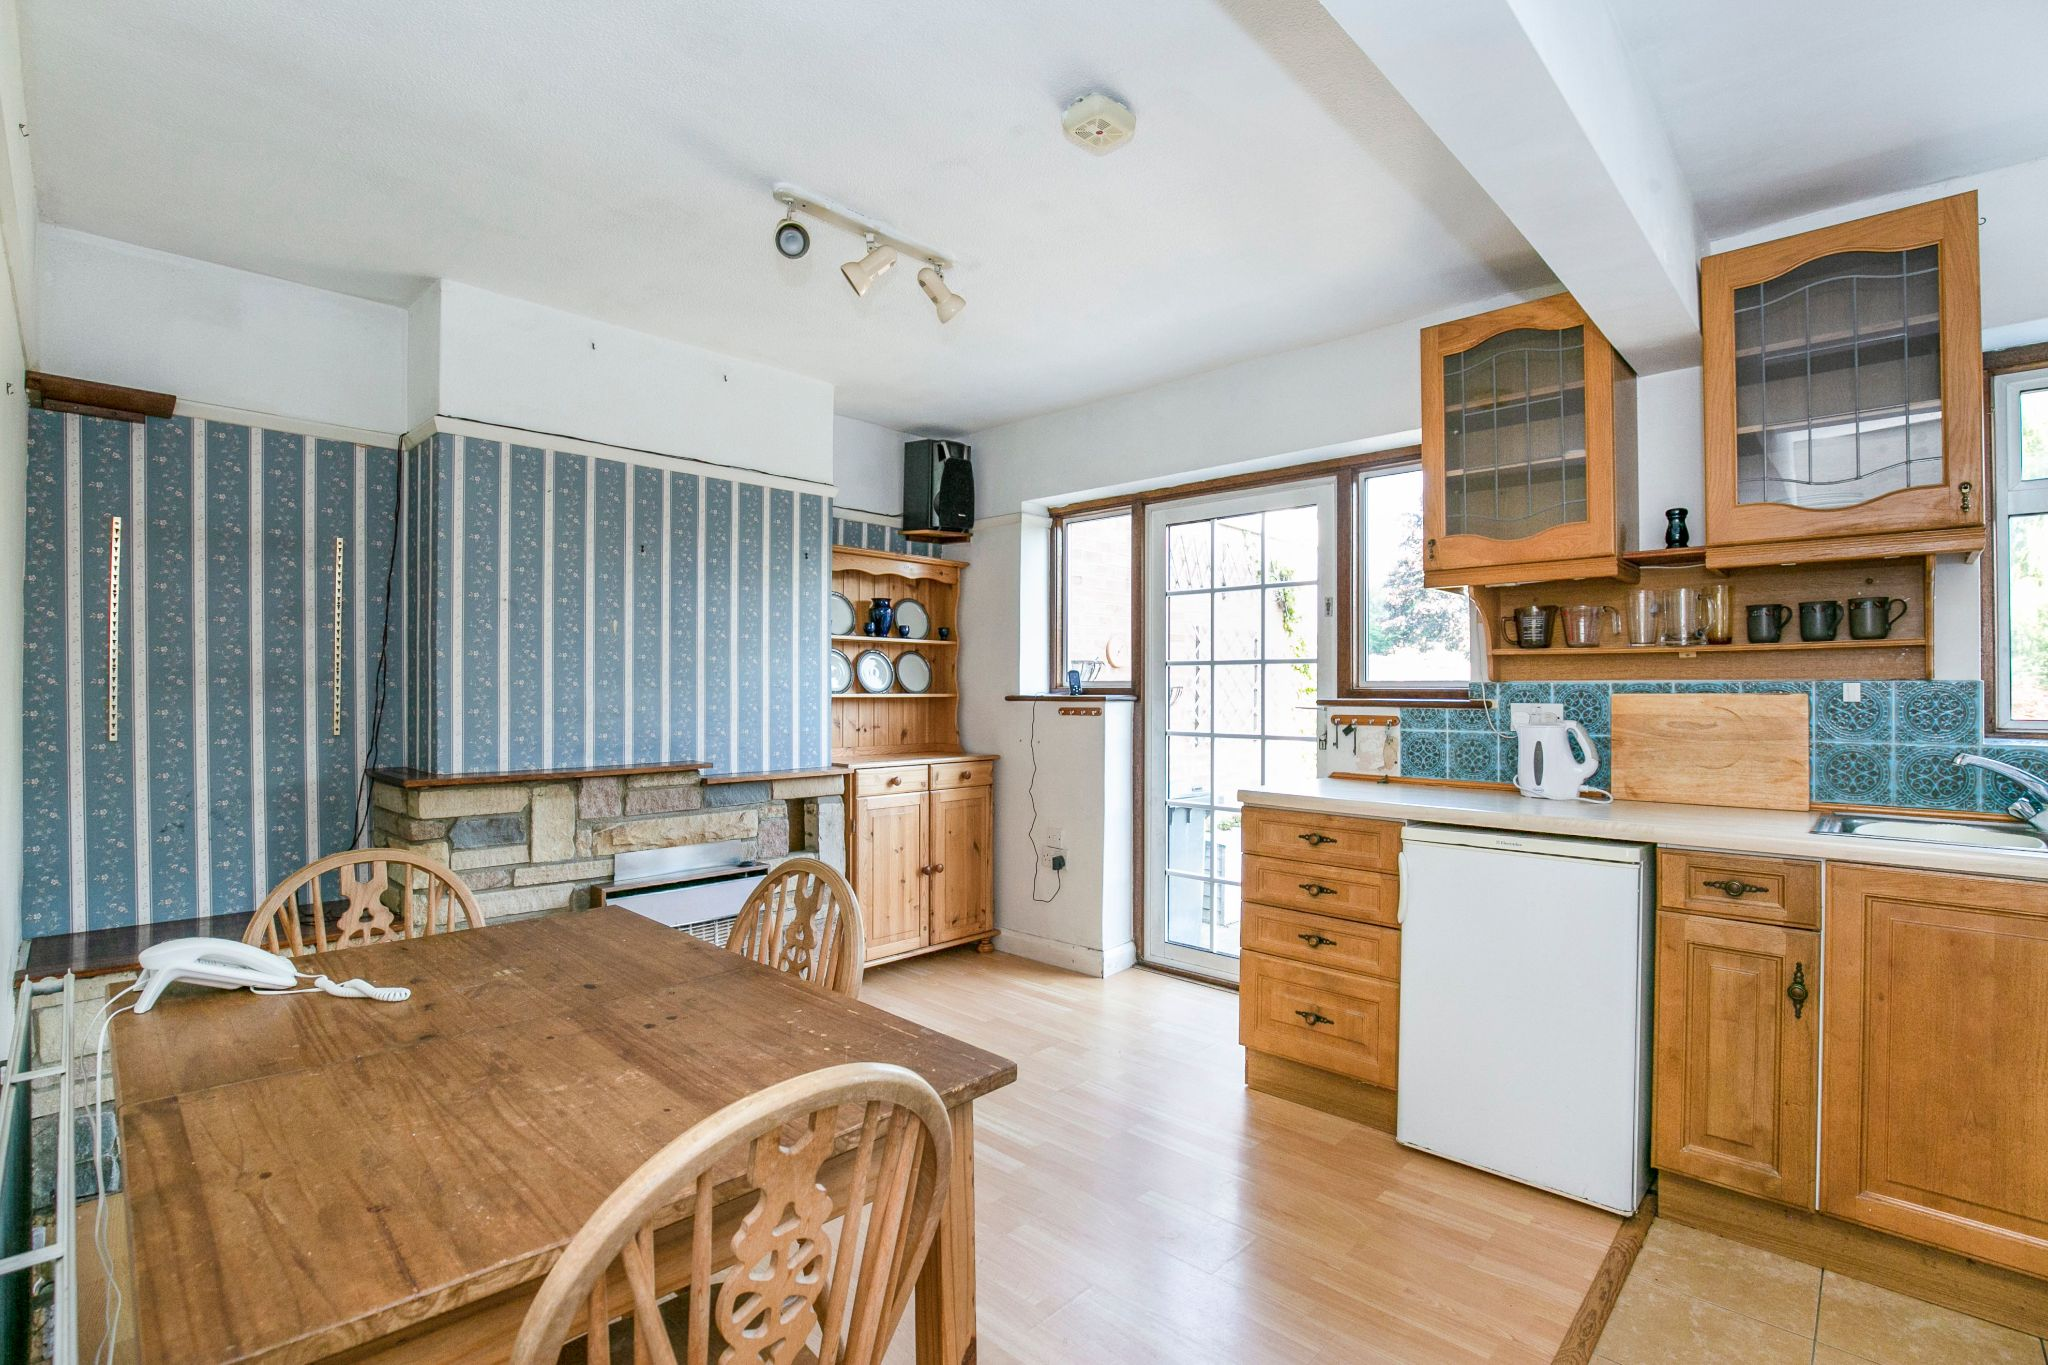 3 bedroom semi-detached house Sold in Potters Bar - Photograph 11